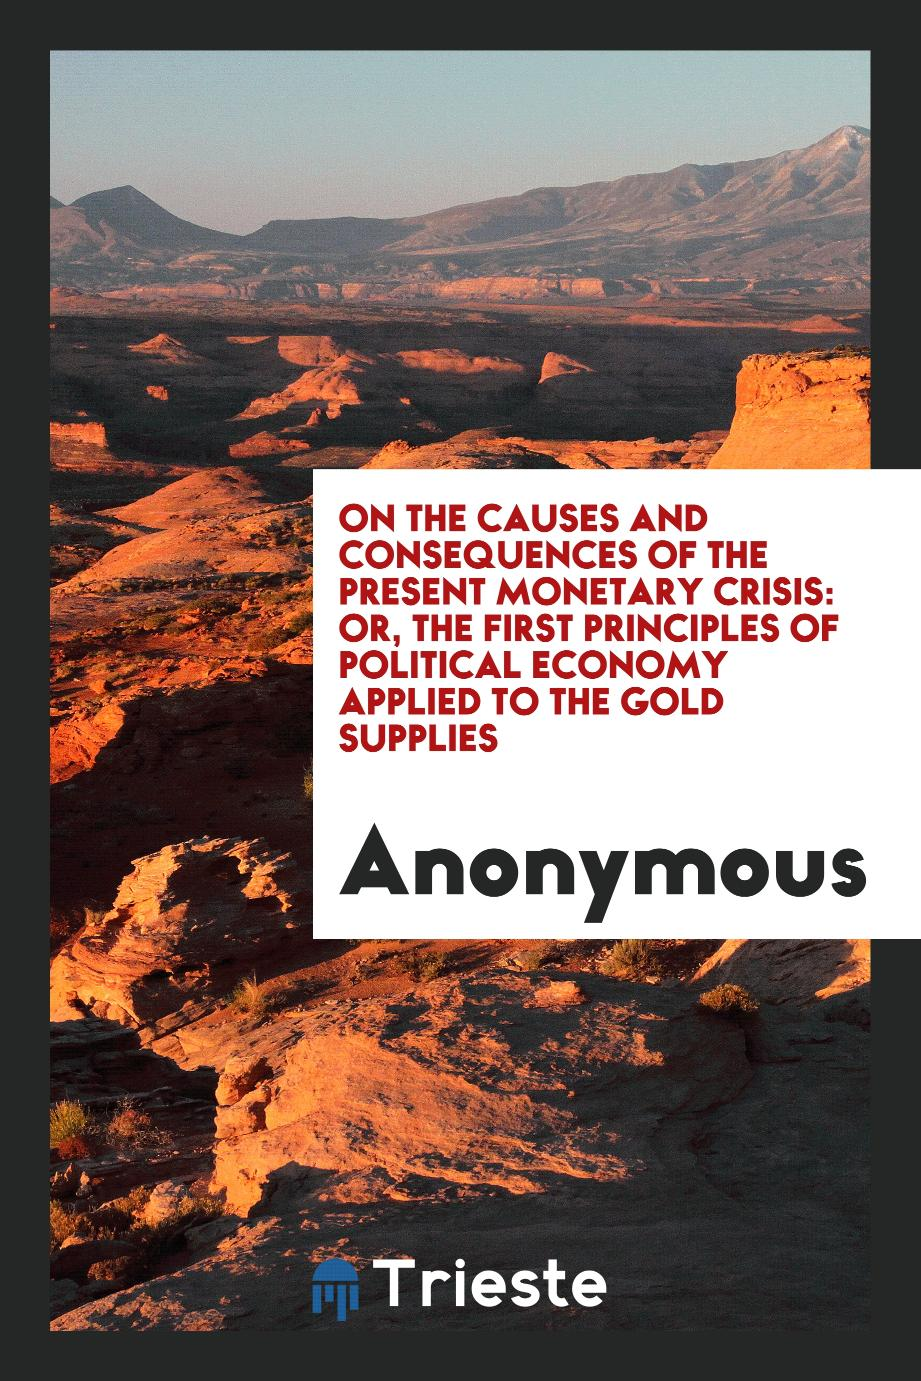 On the causes and consequences of the present monetary crisis: or, The first principles of Political Economy Applied to the Gold Supplies